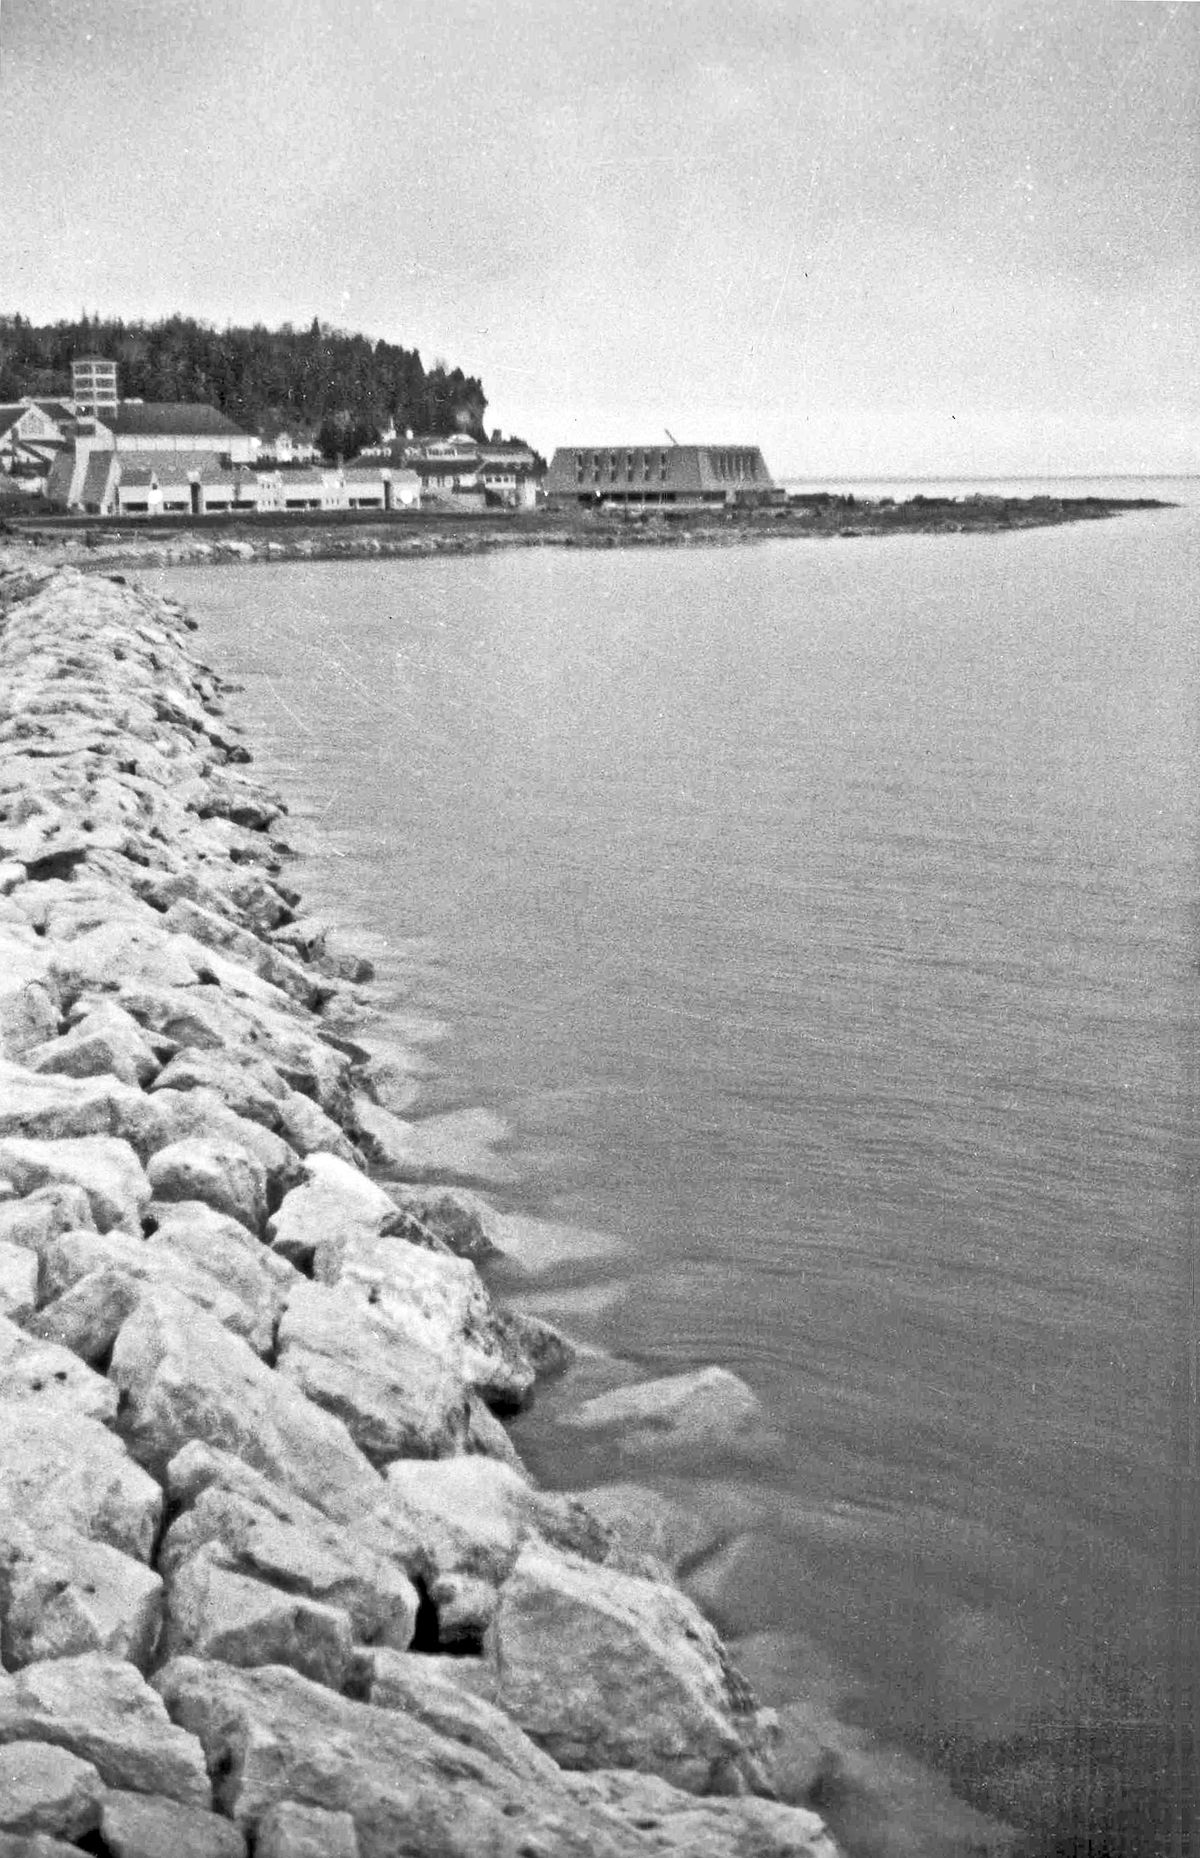 Mission Point (Mackinac Island)